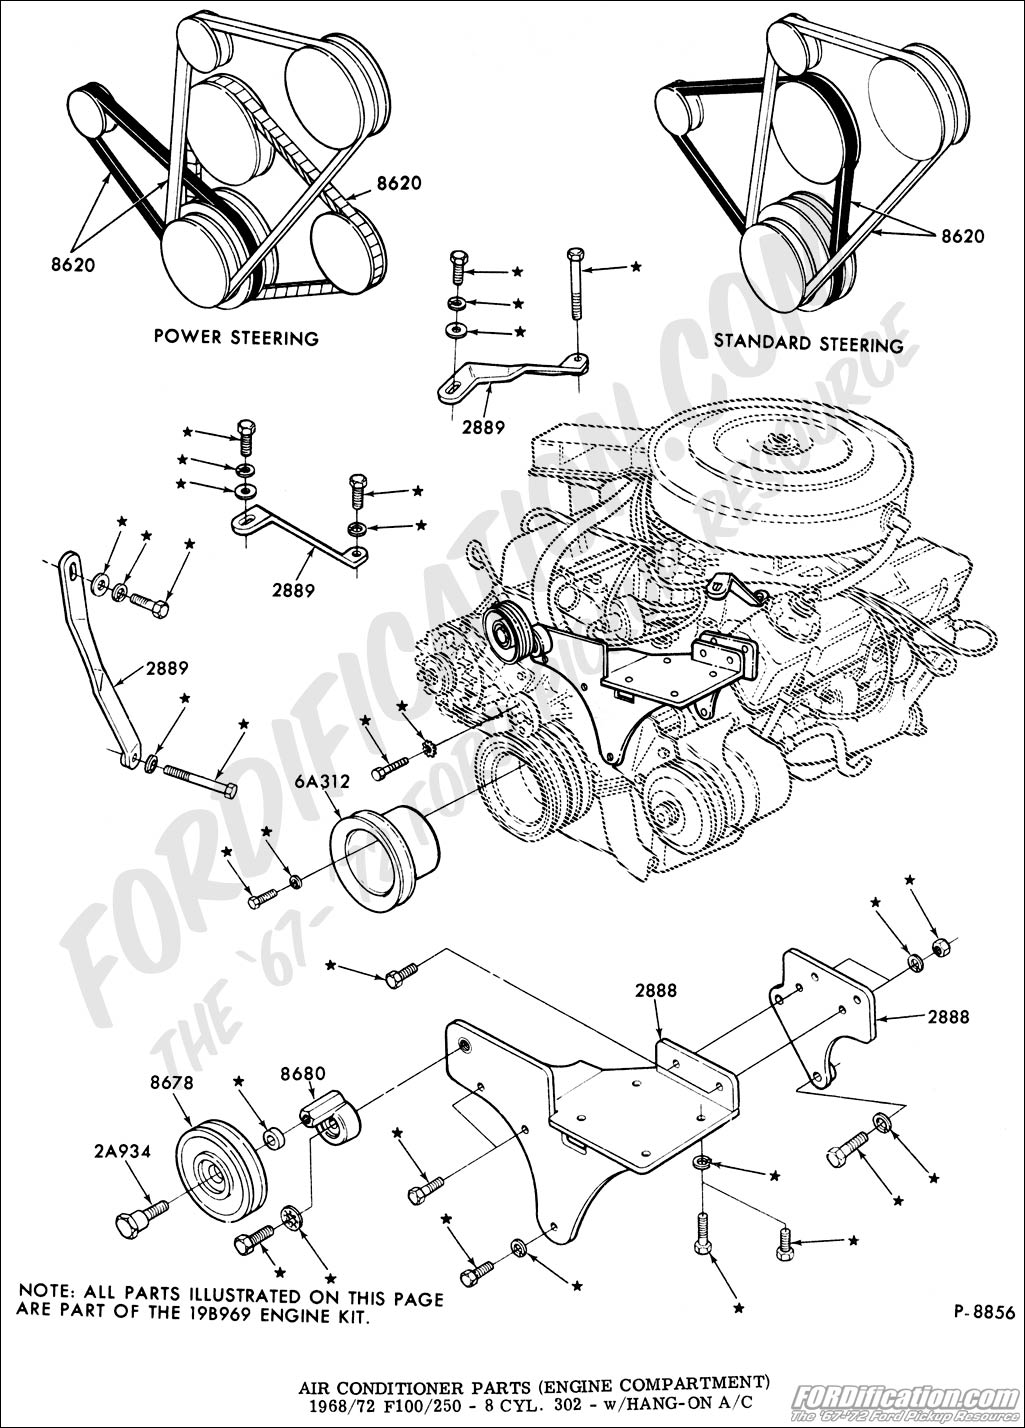 5do09 Ford Mustang Gt Car Questions Car Will Not Start Unless moreover Jeep Grand Cherokee Heater Wiring Diagram in addition 936701 Voltage Regulator Problems together with 1121595 Replacing Ignition Key Lock Cylinder 2 furthermore 1967 Ford Neutral Safety Switch Wiring Diagram. on 1968 mustang neutral safety switch wiring diagram